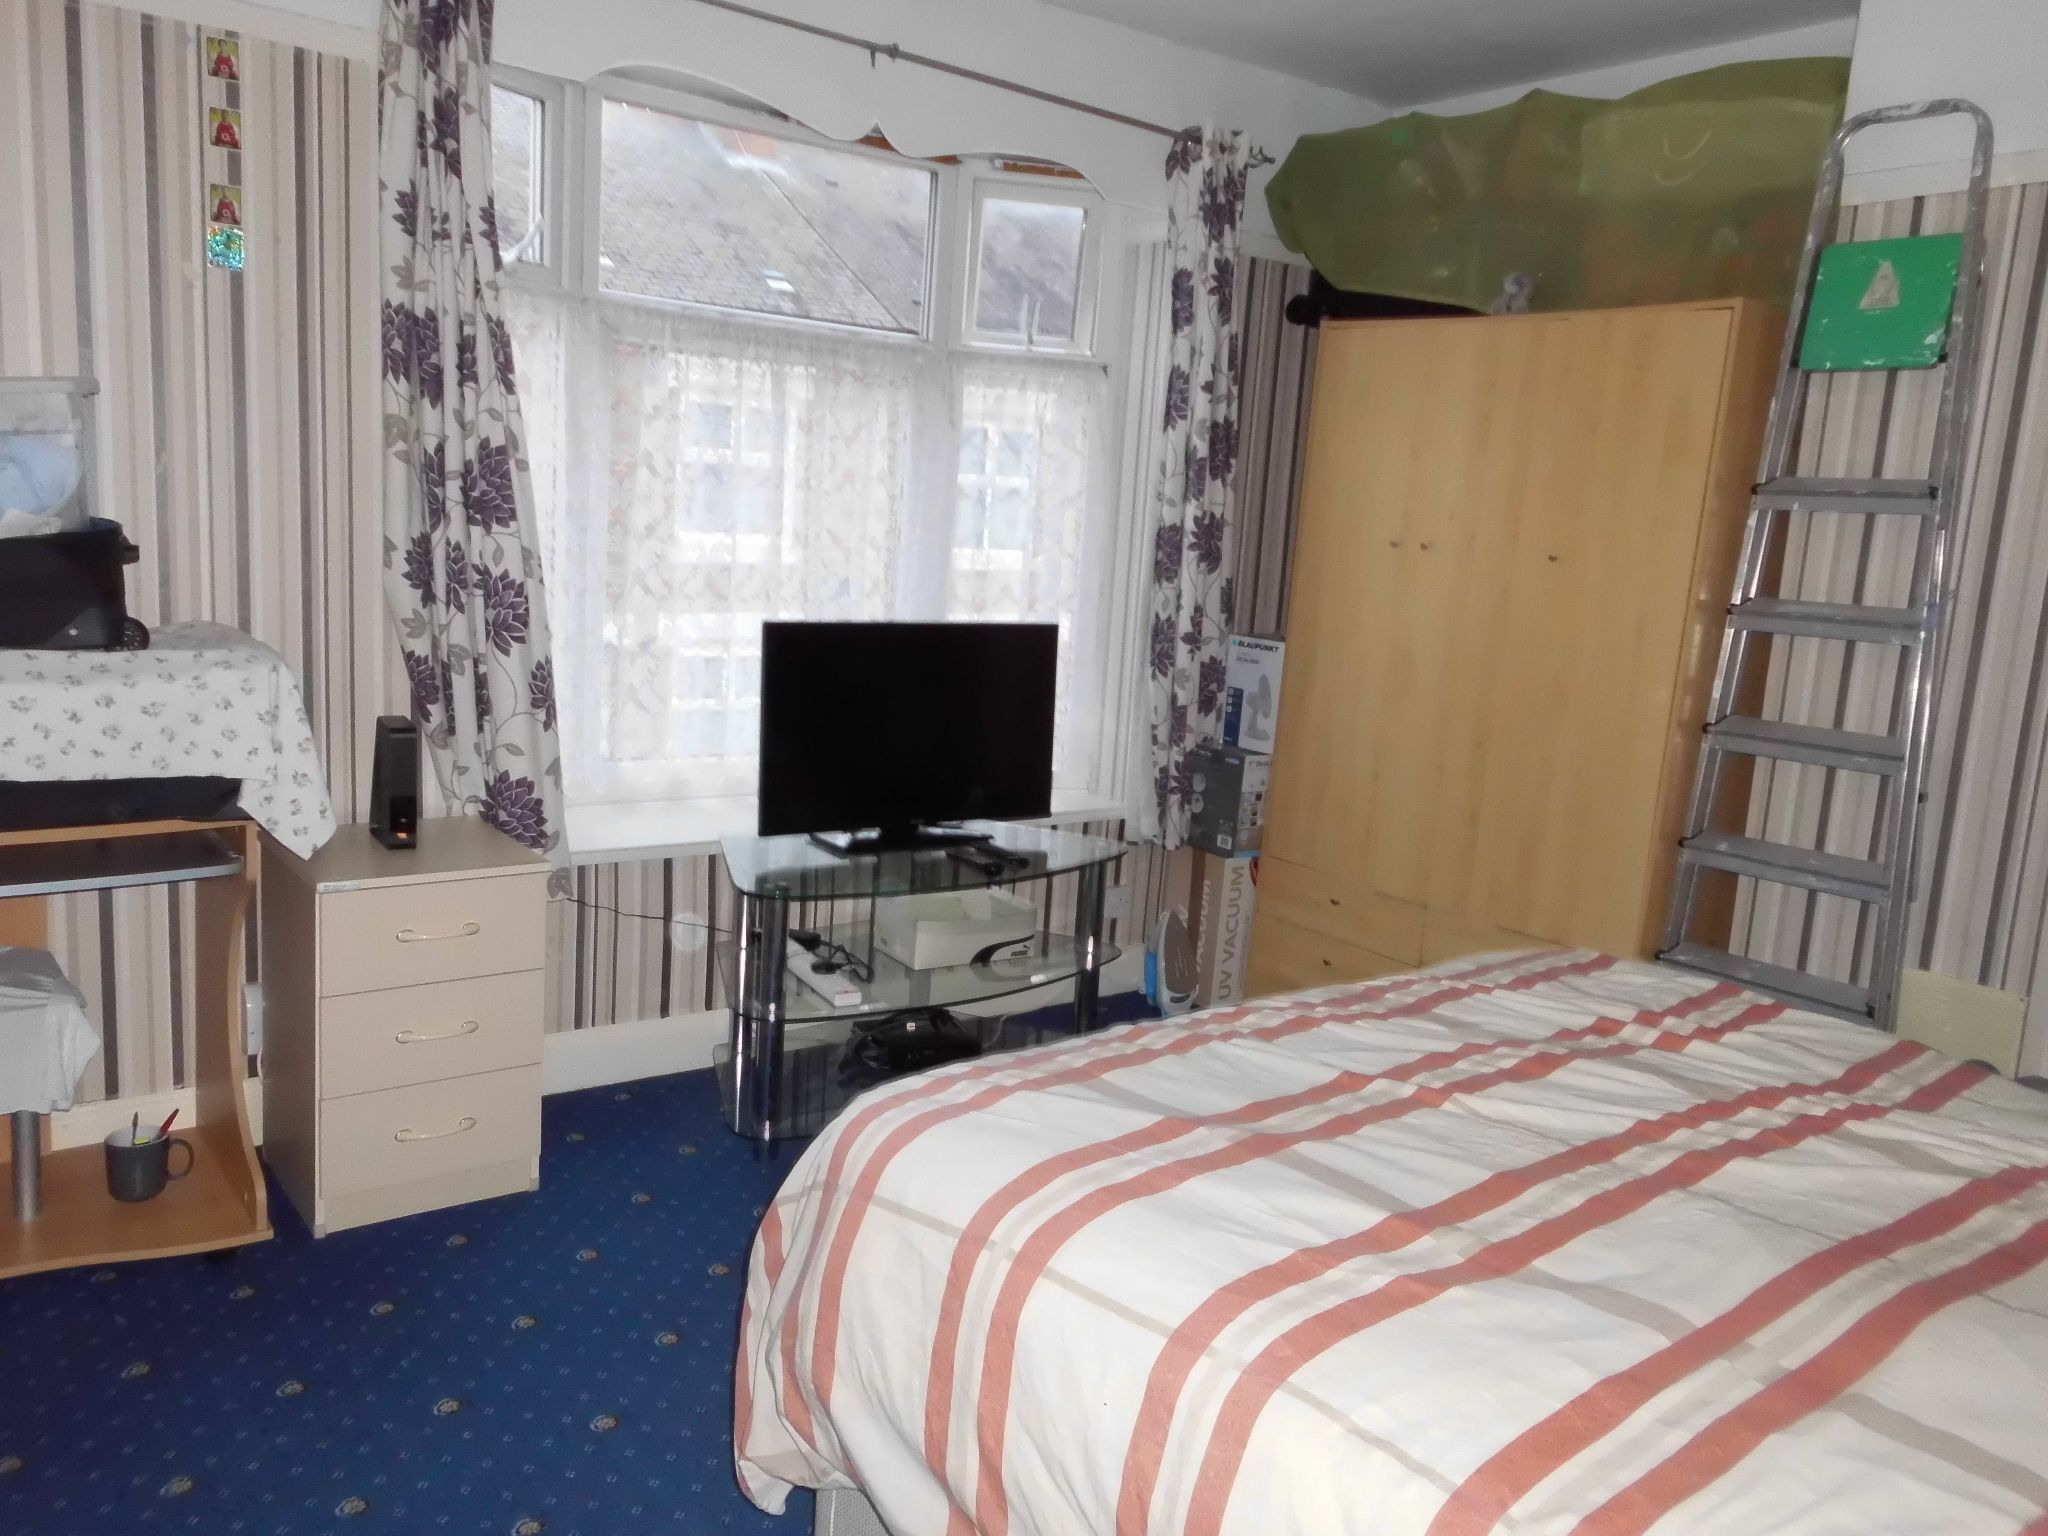 3 bedroom mid terraced house SSTC in Leicester - Photograph 8.